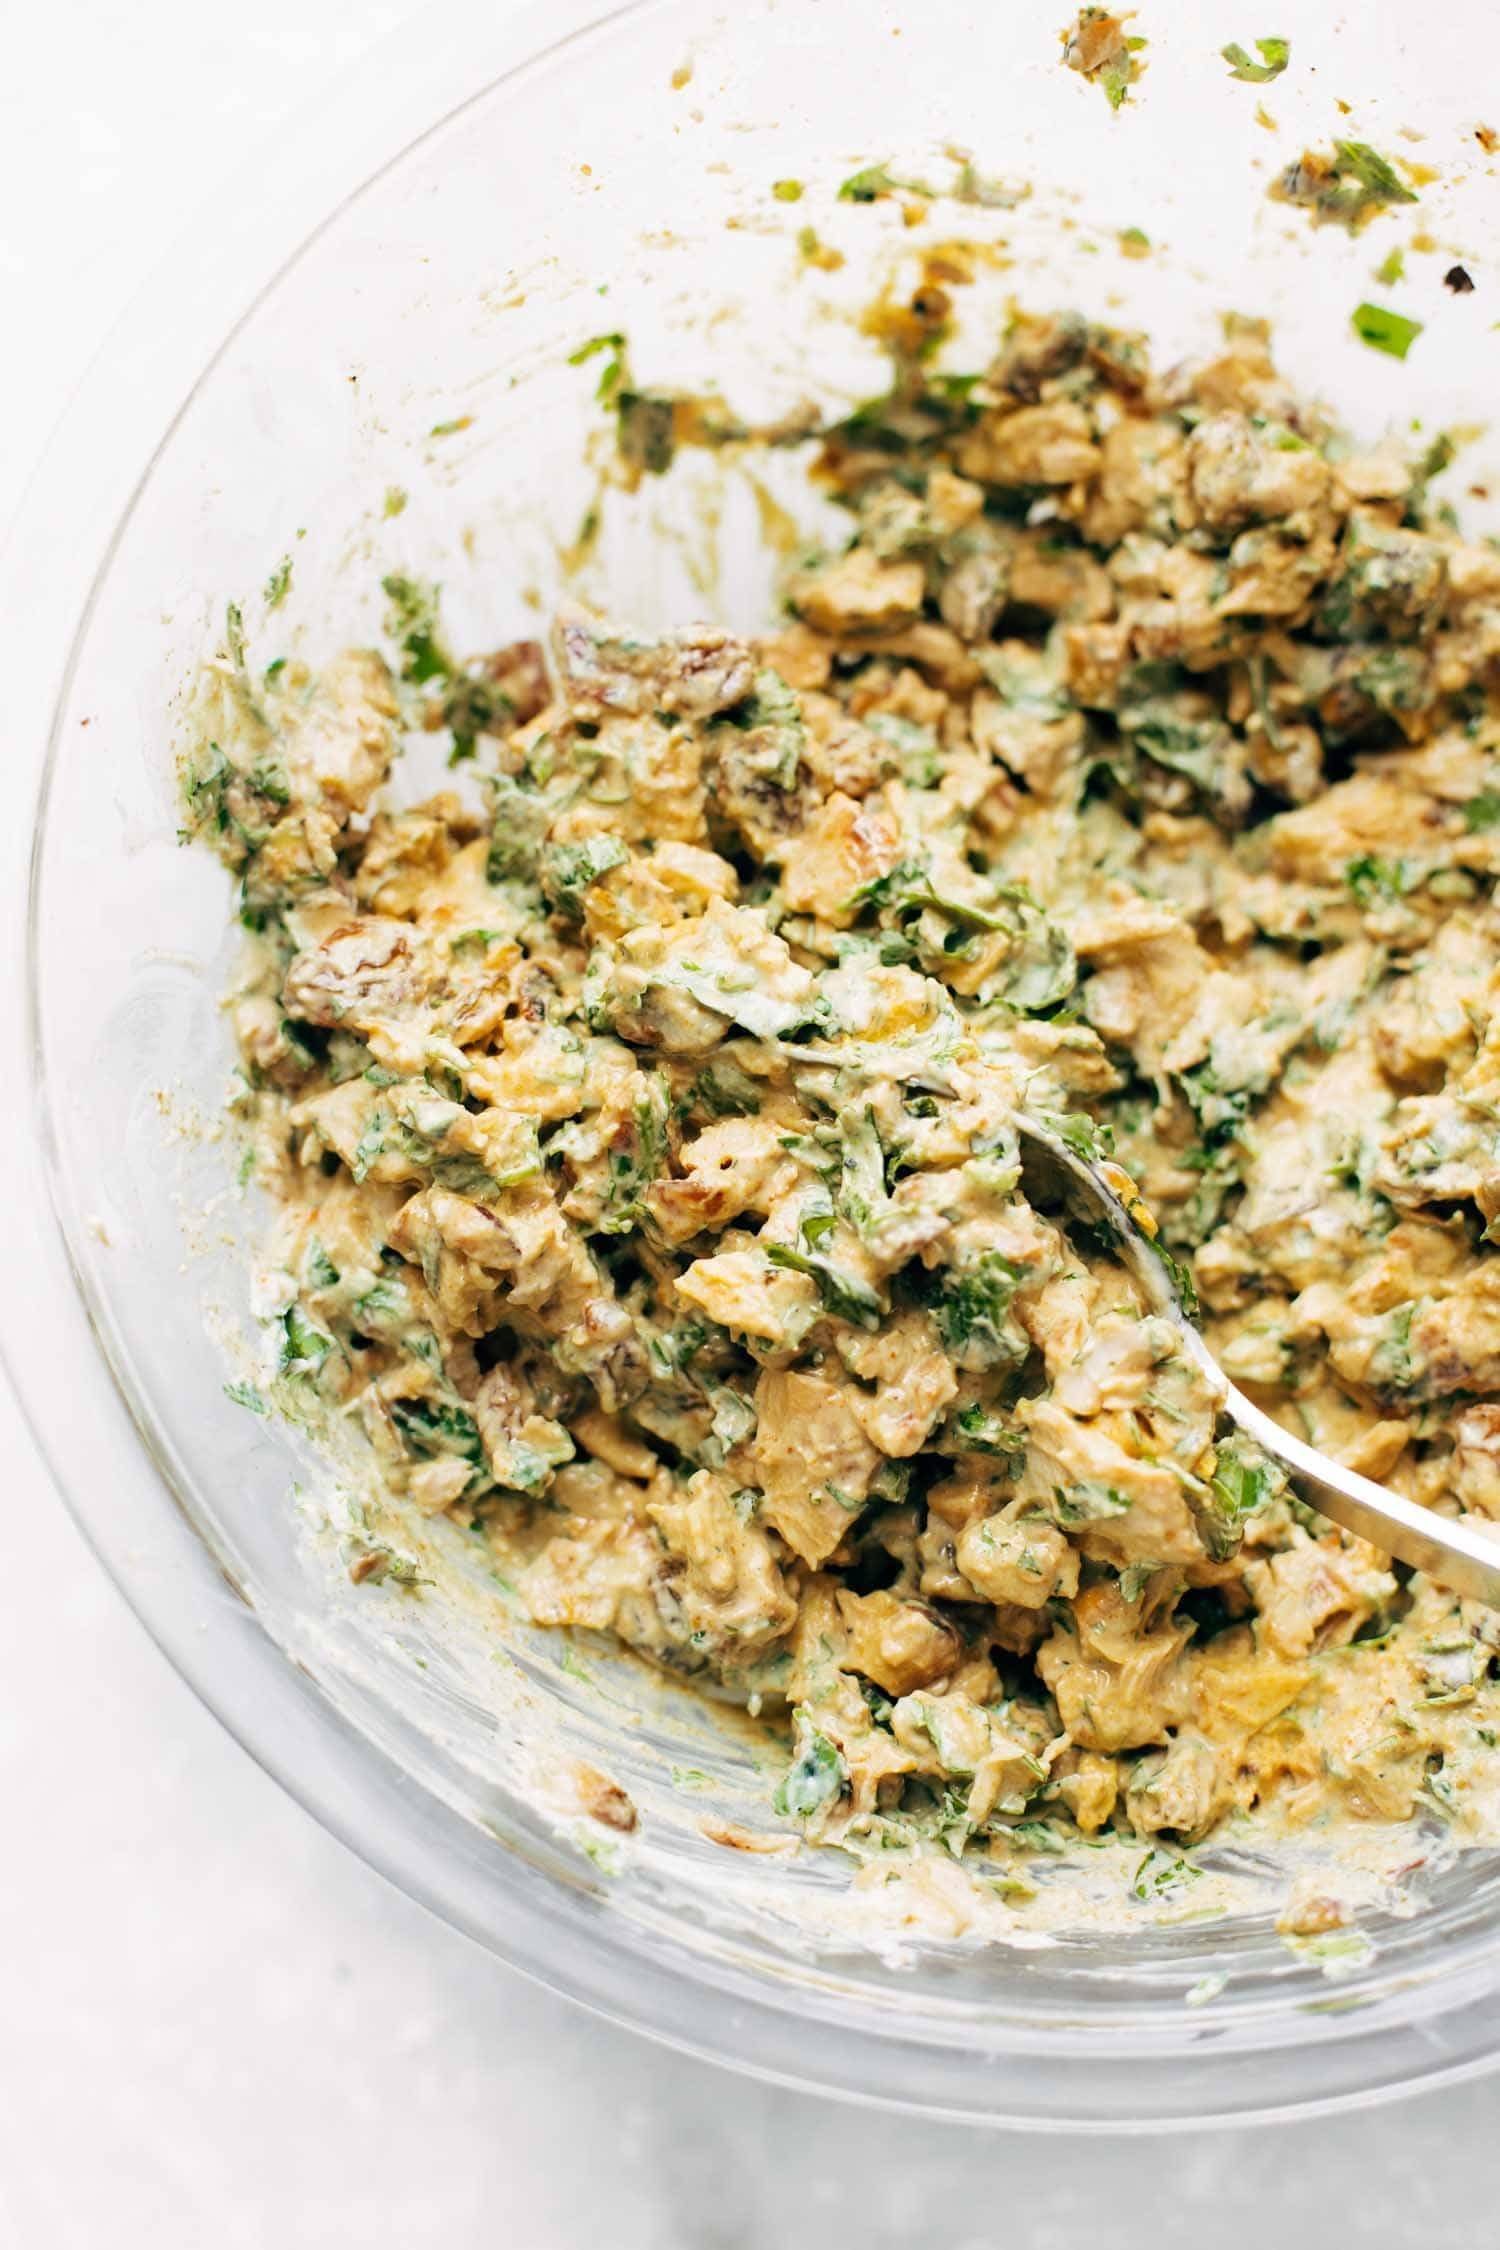 Curry Chicken Salad: healthy and super-yum. Just a few clean ingredients, like curry powder, chicken, golden raisins, pistachios, honey, and Greek yogurt. | pinchofyum.com